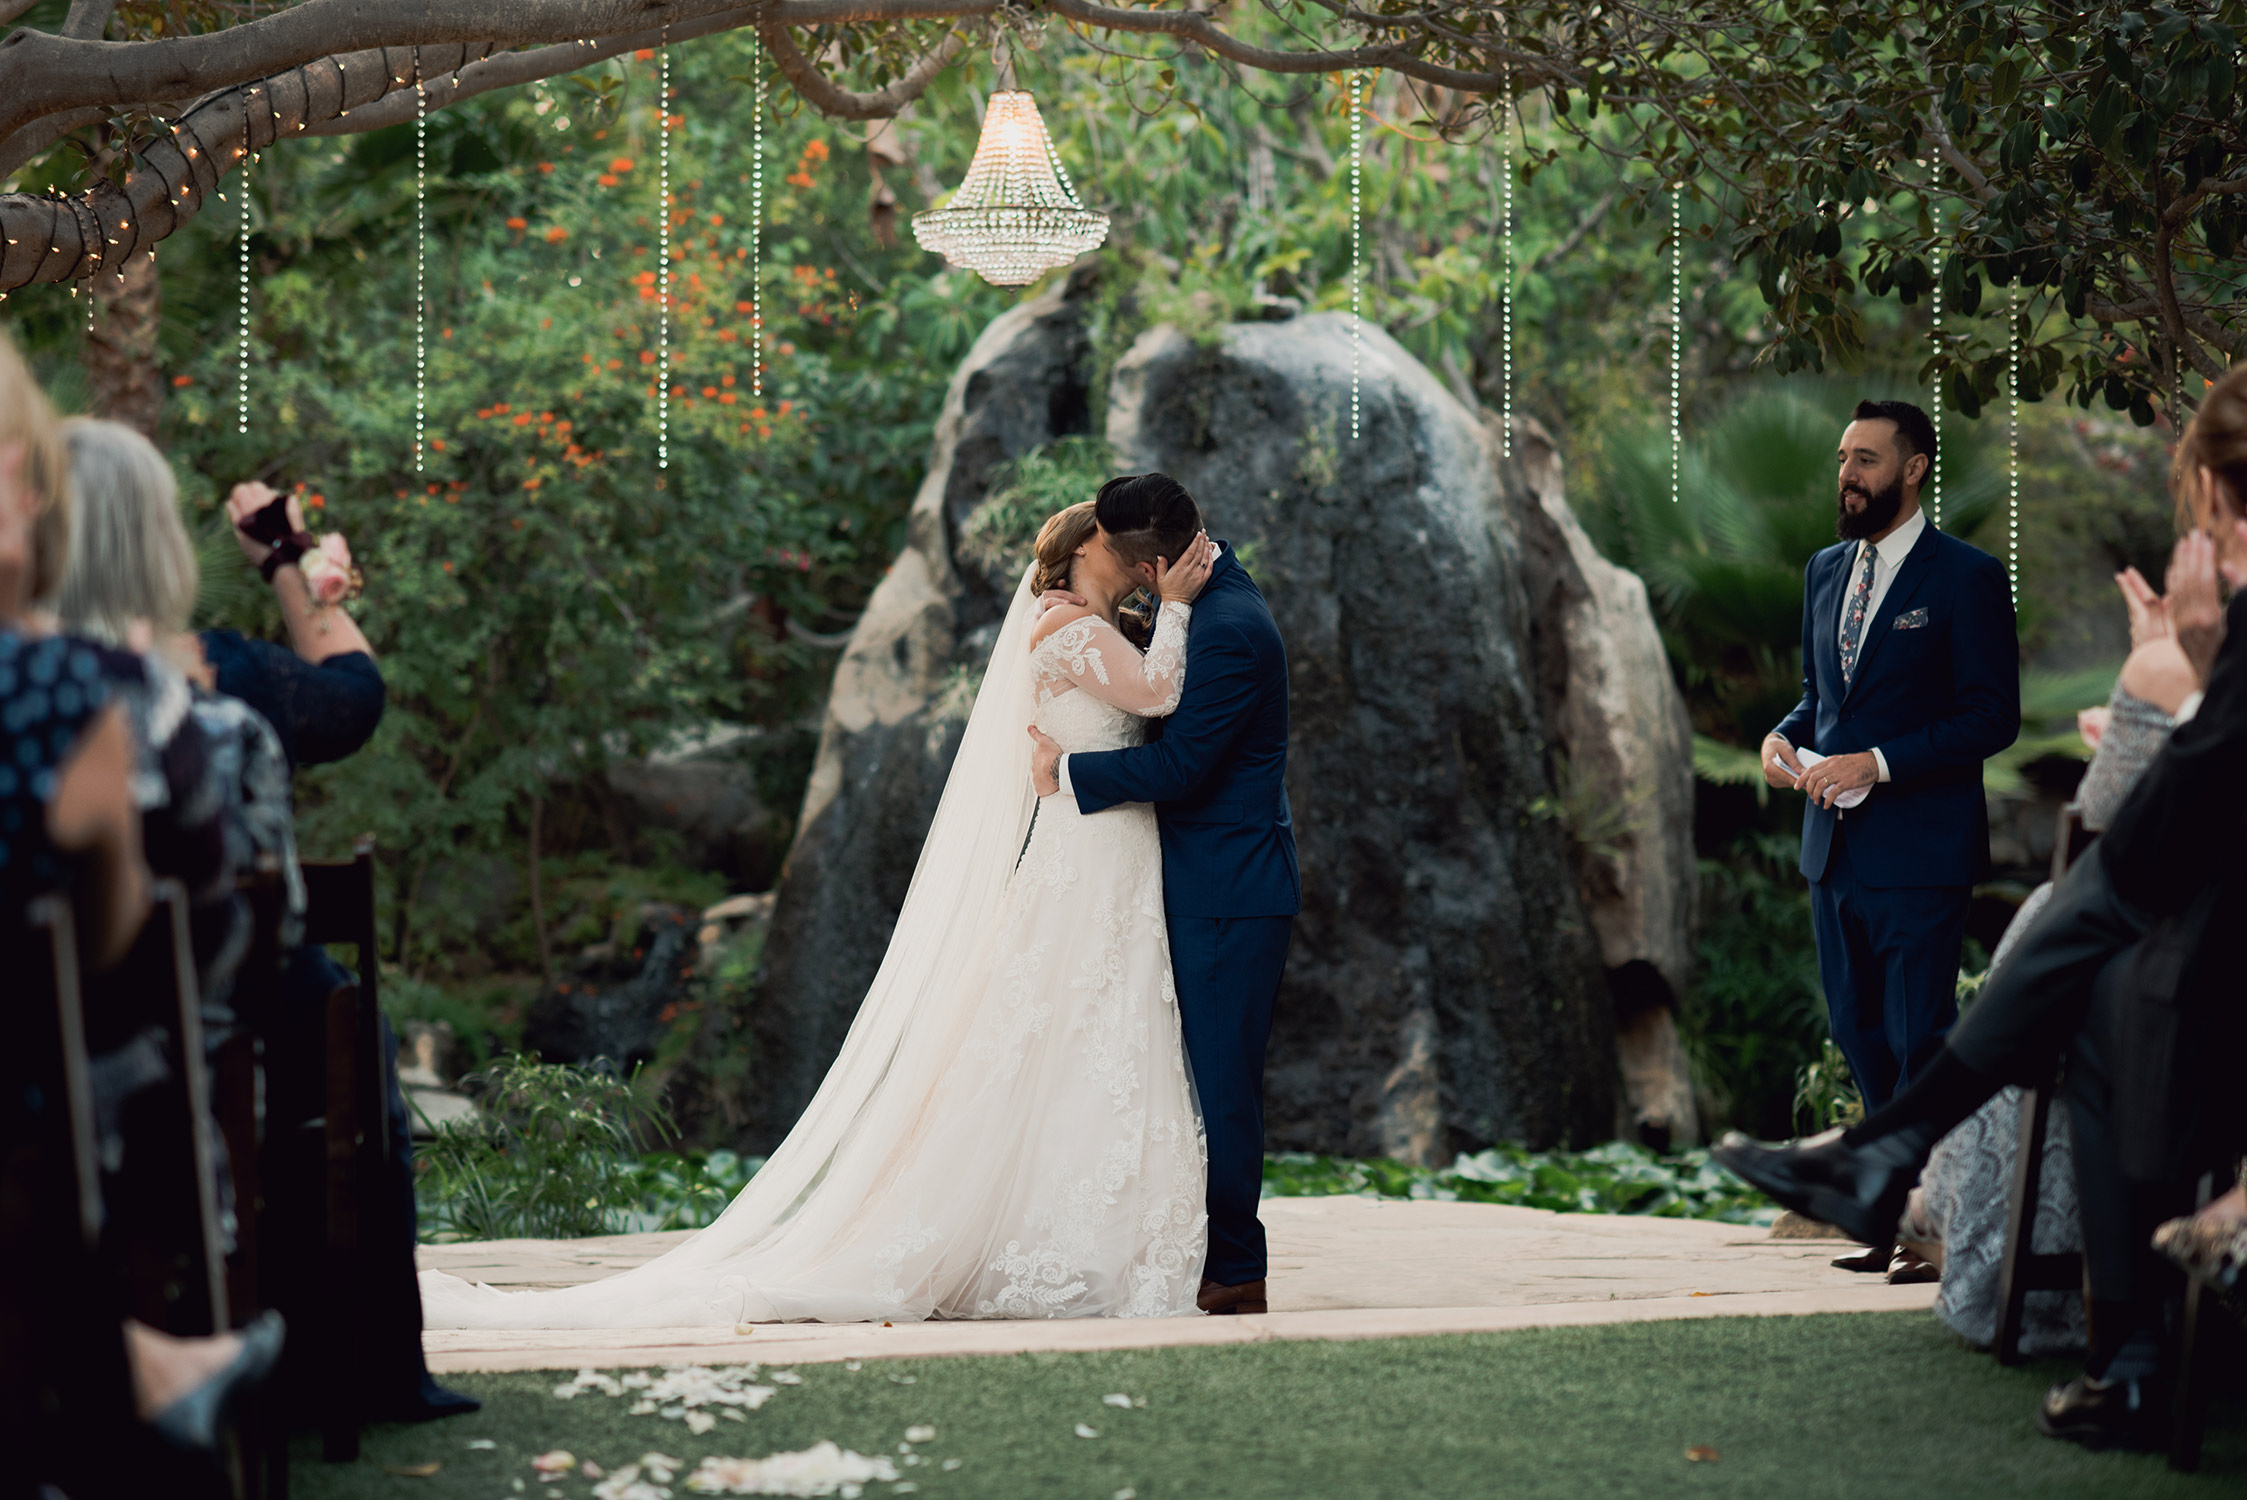 181103_Costa-wedding_481web.jpg